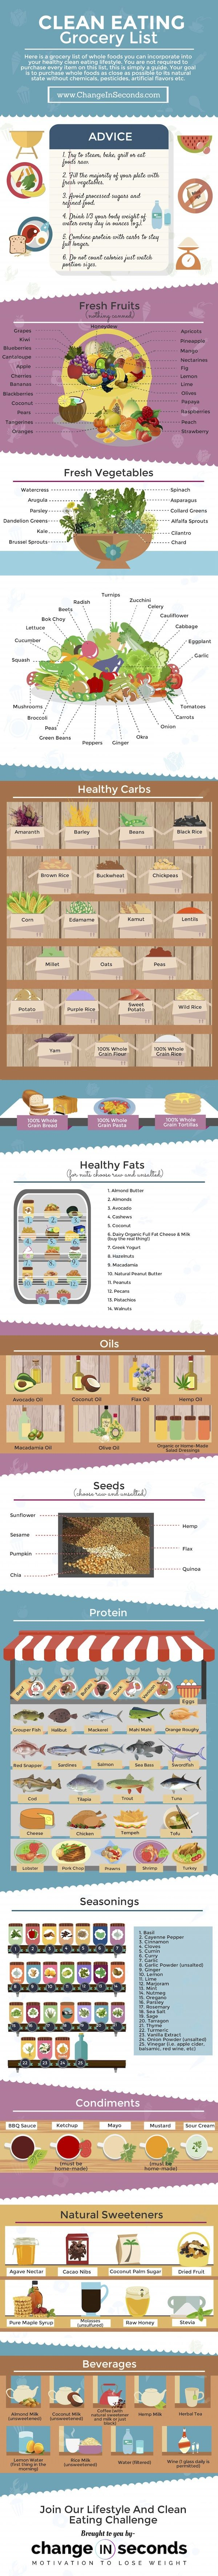 Infographic: The Complete Grocery List For A Healthy, Clean-Eating Lifestyle - DesignTAXI.com